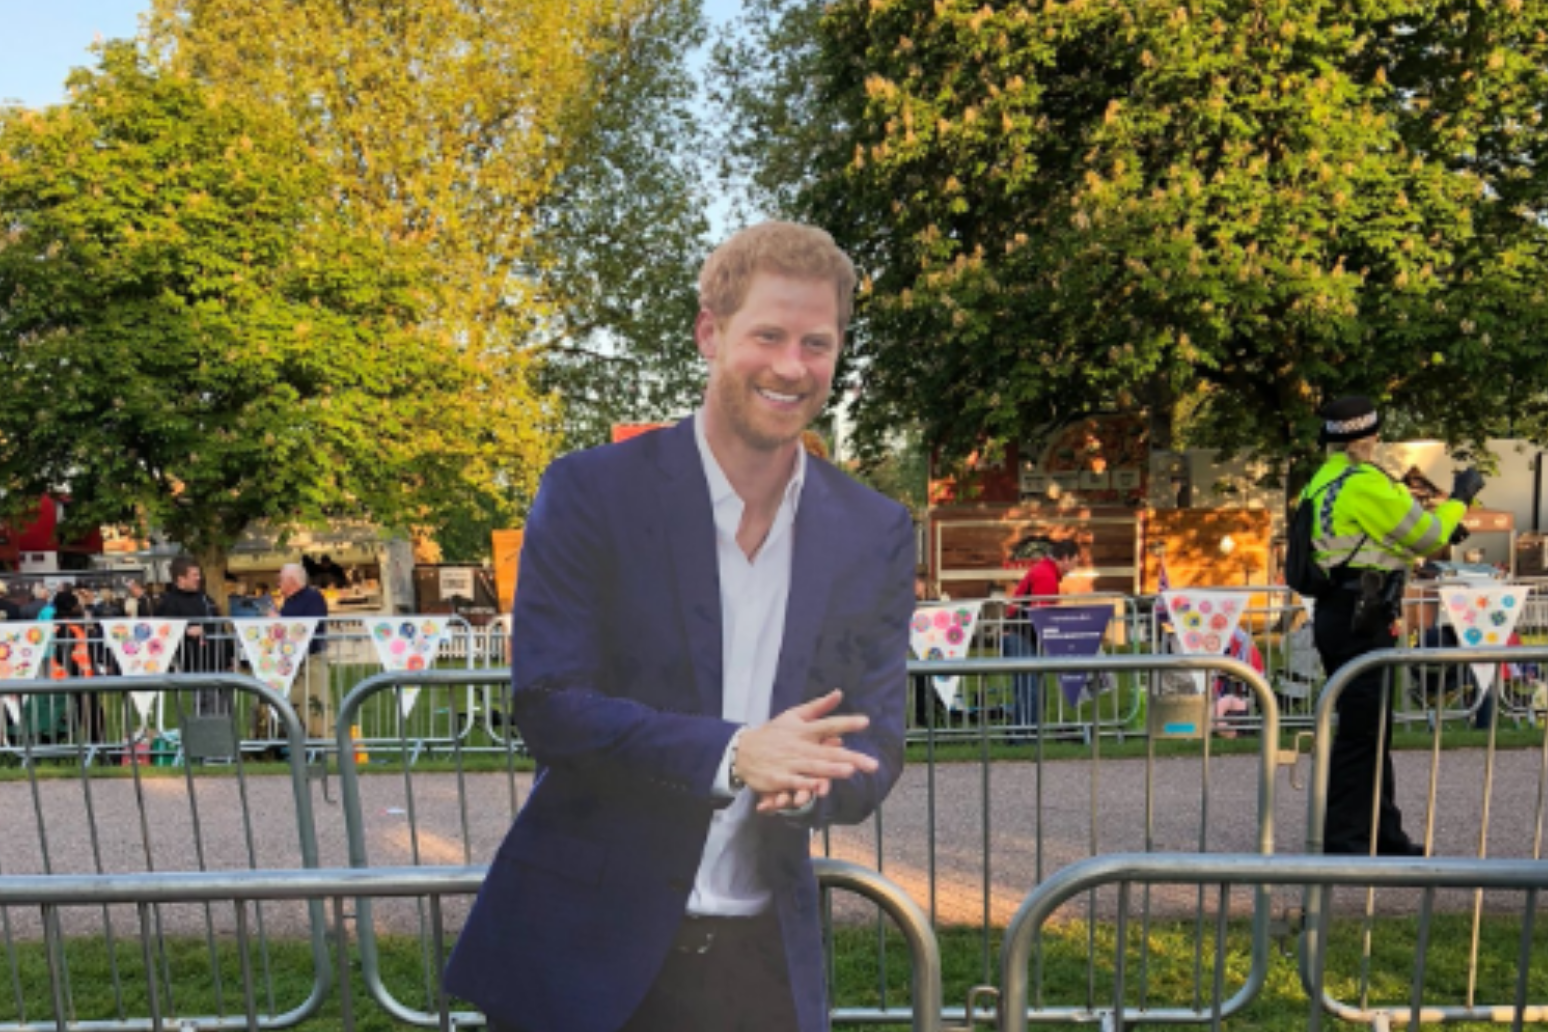 Prince Harry named Duke of Sussex, Meghan Markle to be a duchess - Buckingham Palace